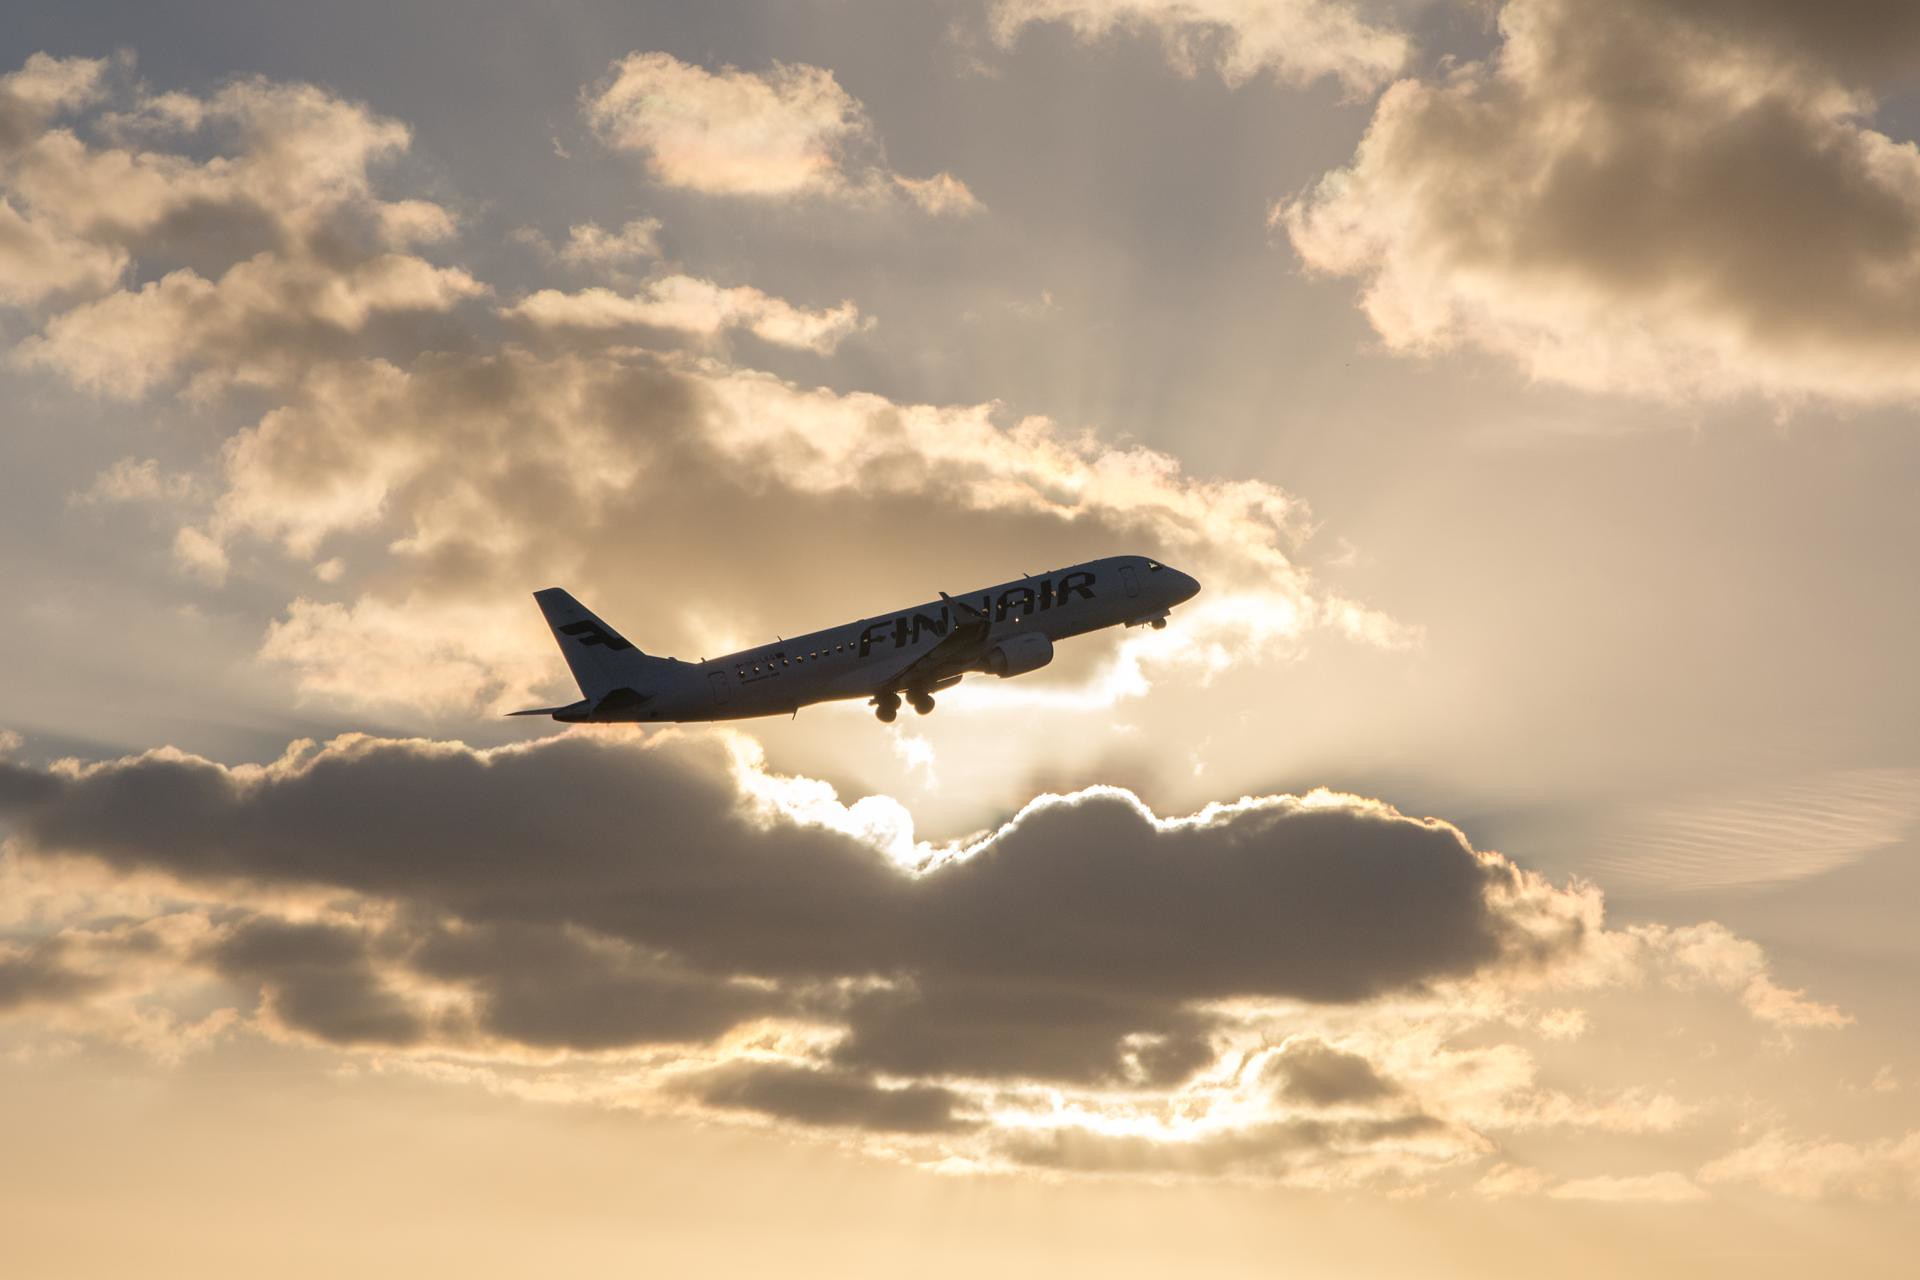 Most of the layoffs concern Finnair's workers in Finland. Photograph: Julien G./Flickr